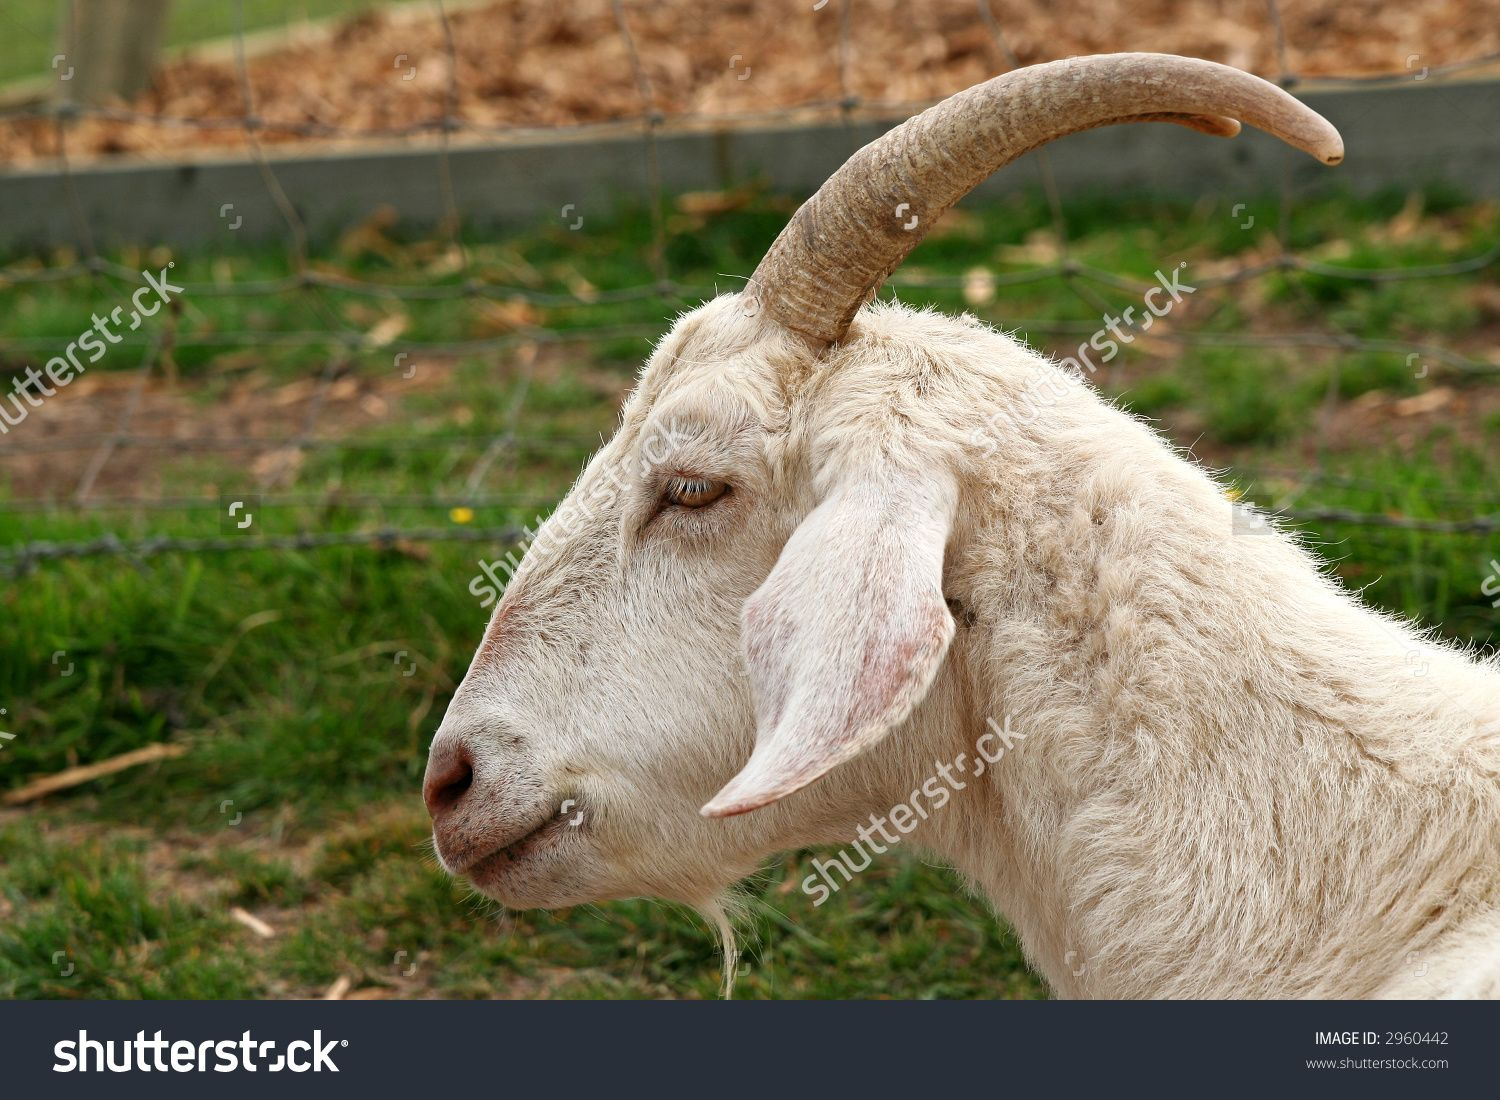 Stock Photo Goat Head Profile 2960442 1500x